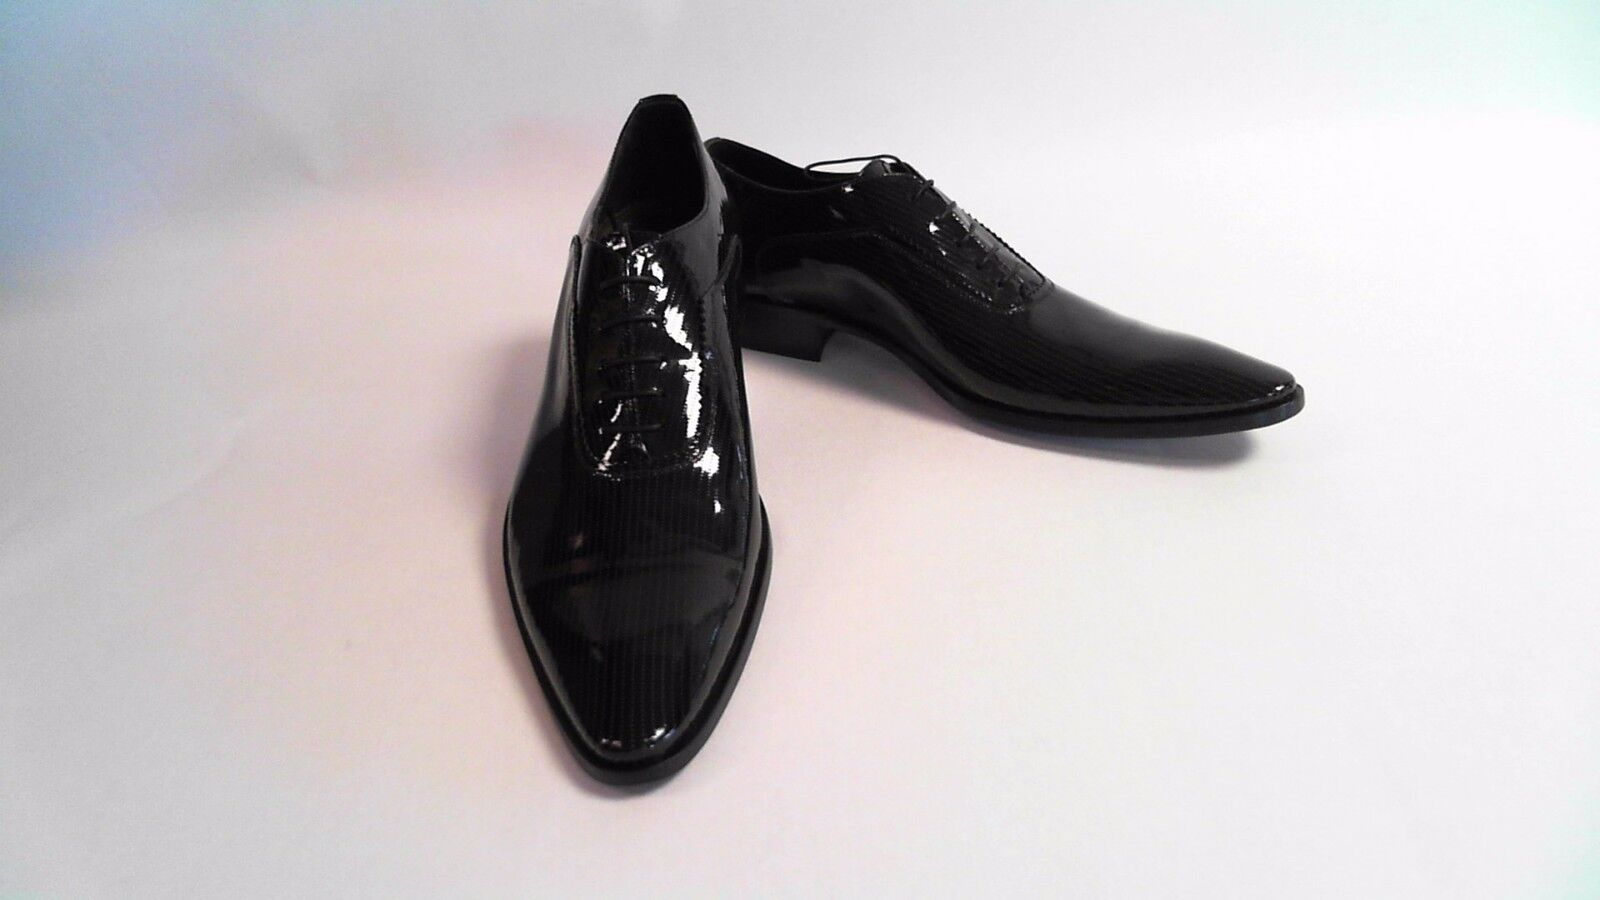 Bespoke HQ Dotted Vero Cuoio Vernice Nero PU Men's Shoes Dotted HQ Italian Patent Leather ed561f